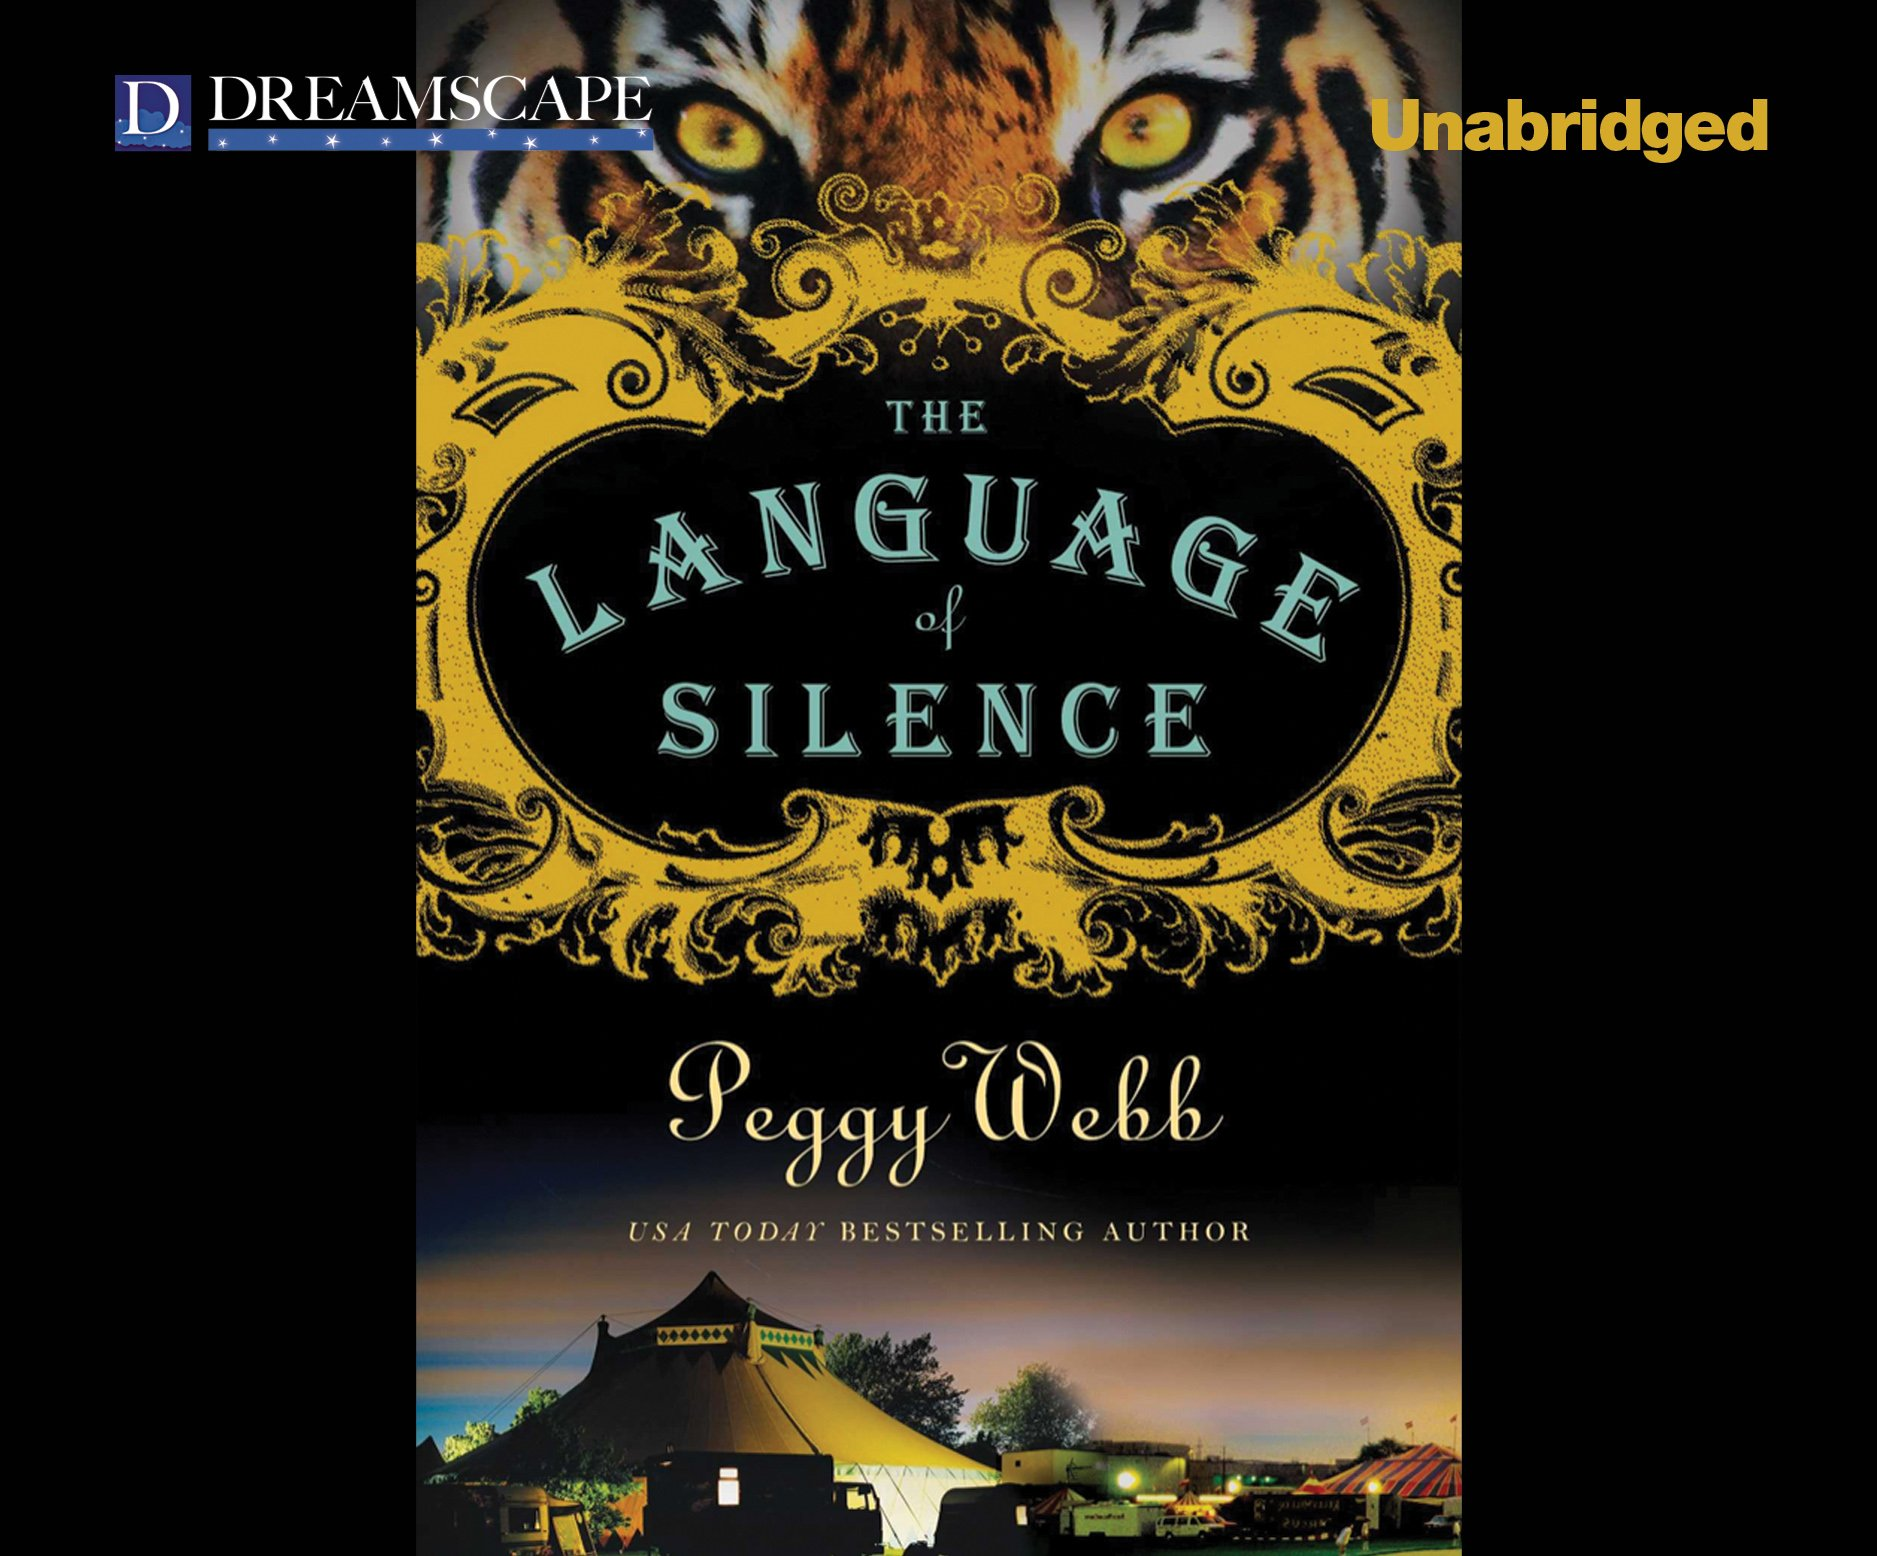 The Language of Silence by Dreamscape Media